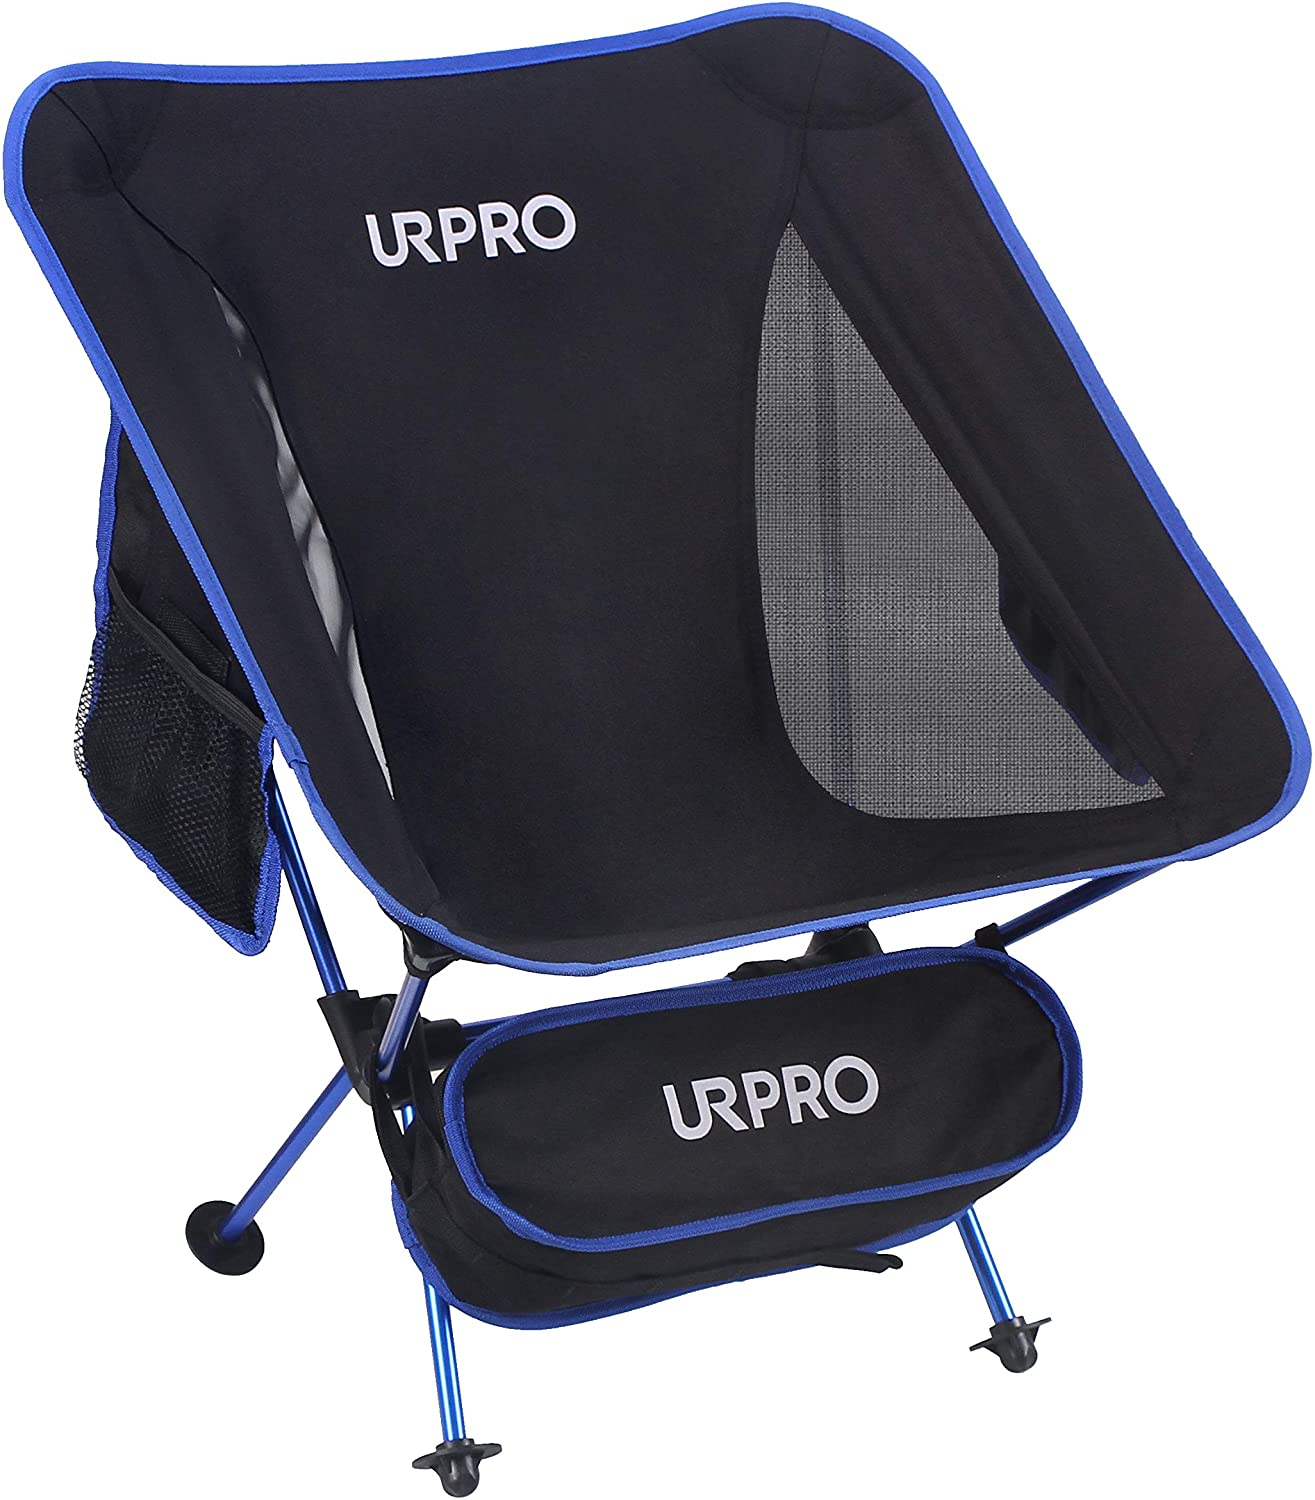 URPRO Outdoor Ultralight Portable Folding Chairs with Carry Bag Heavy Duty 145kgs Capacity Collapsible Chair Camping Folding Chairs Beach Chairs …